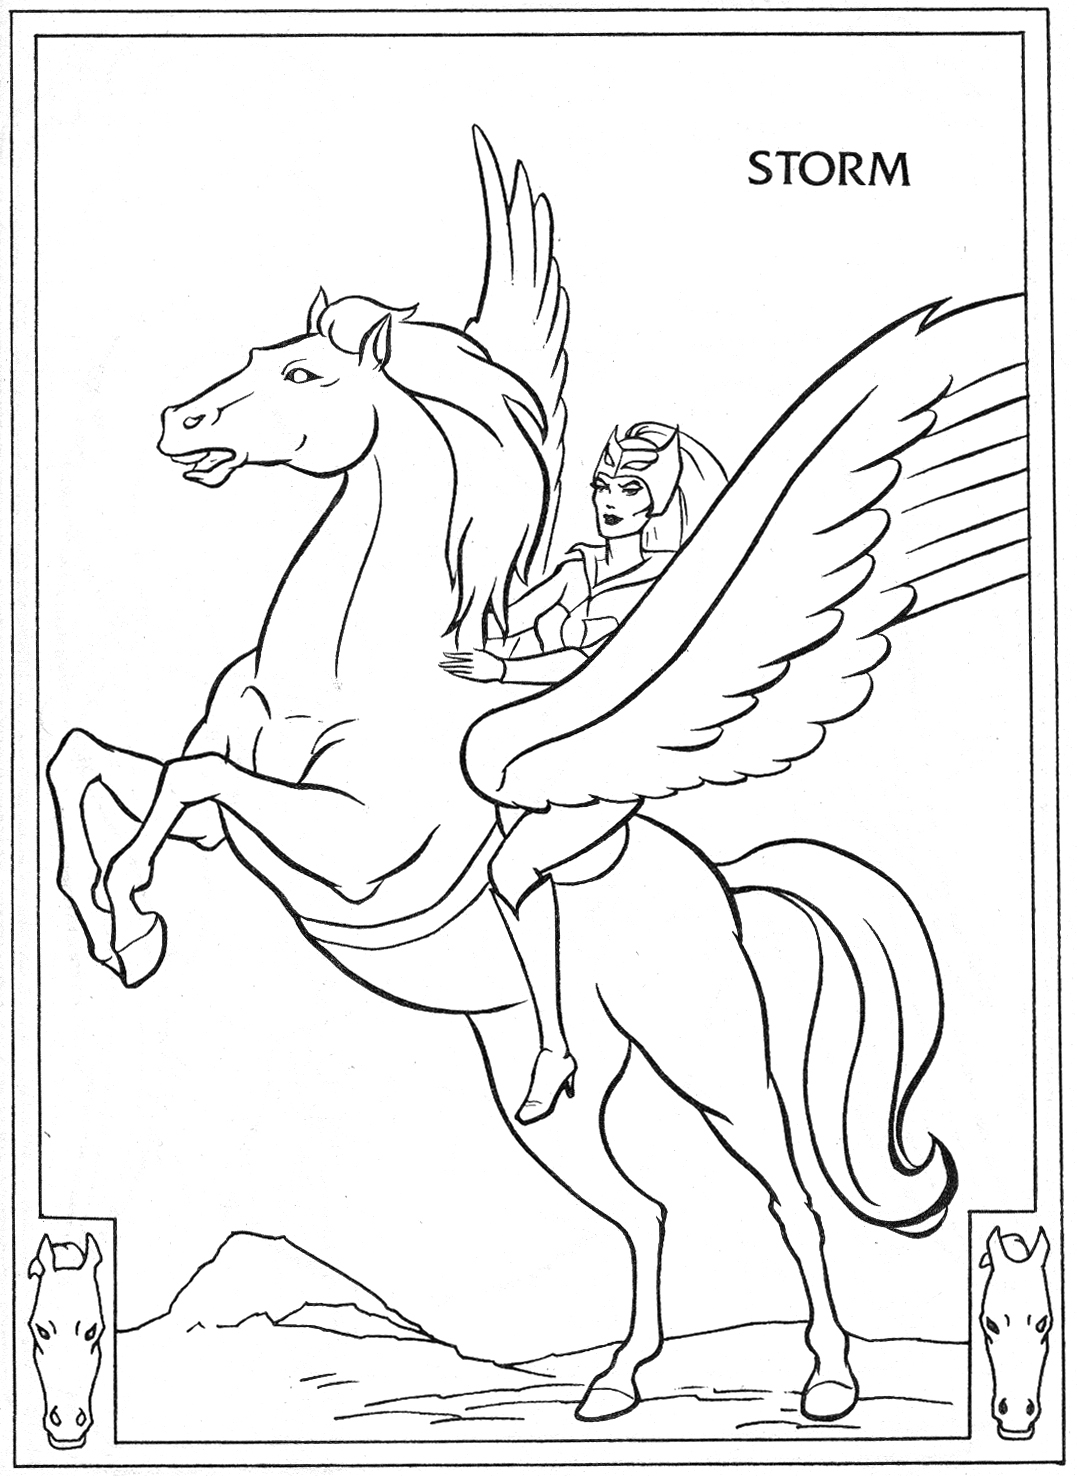 He man coloring pages to download and print for free